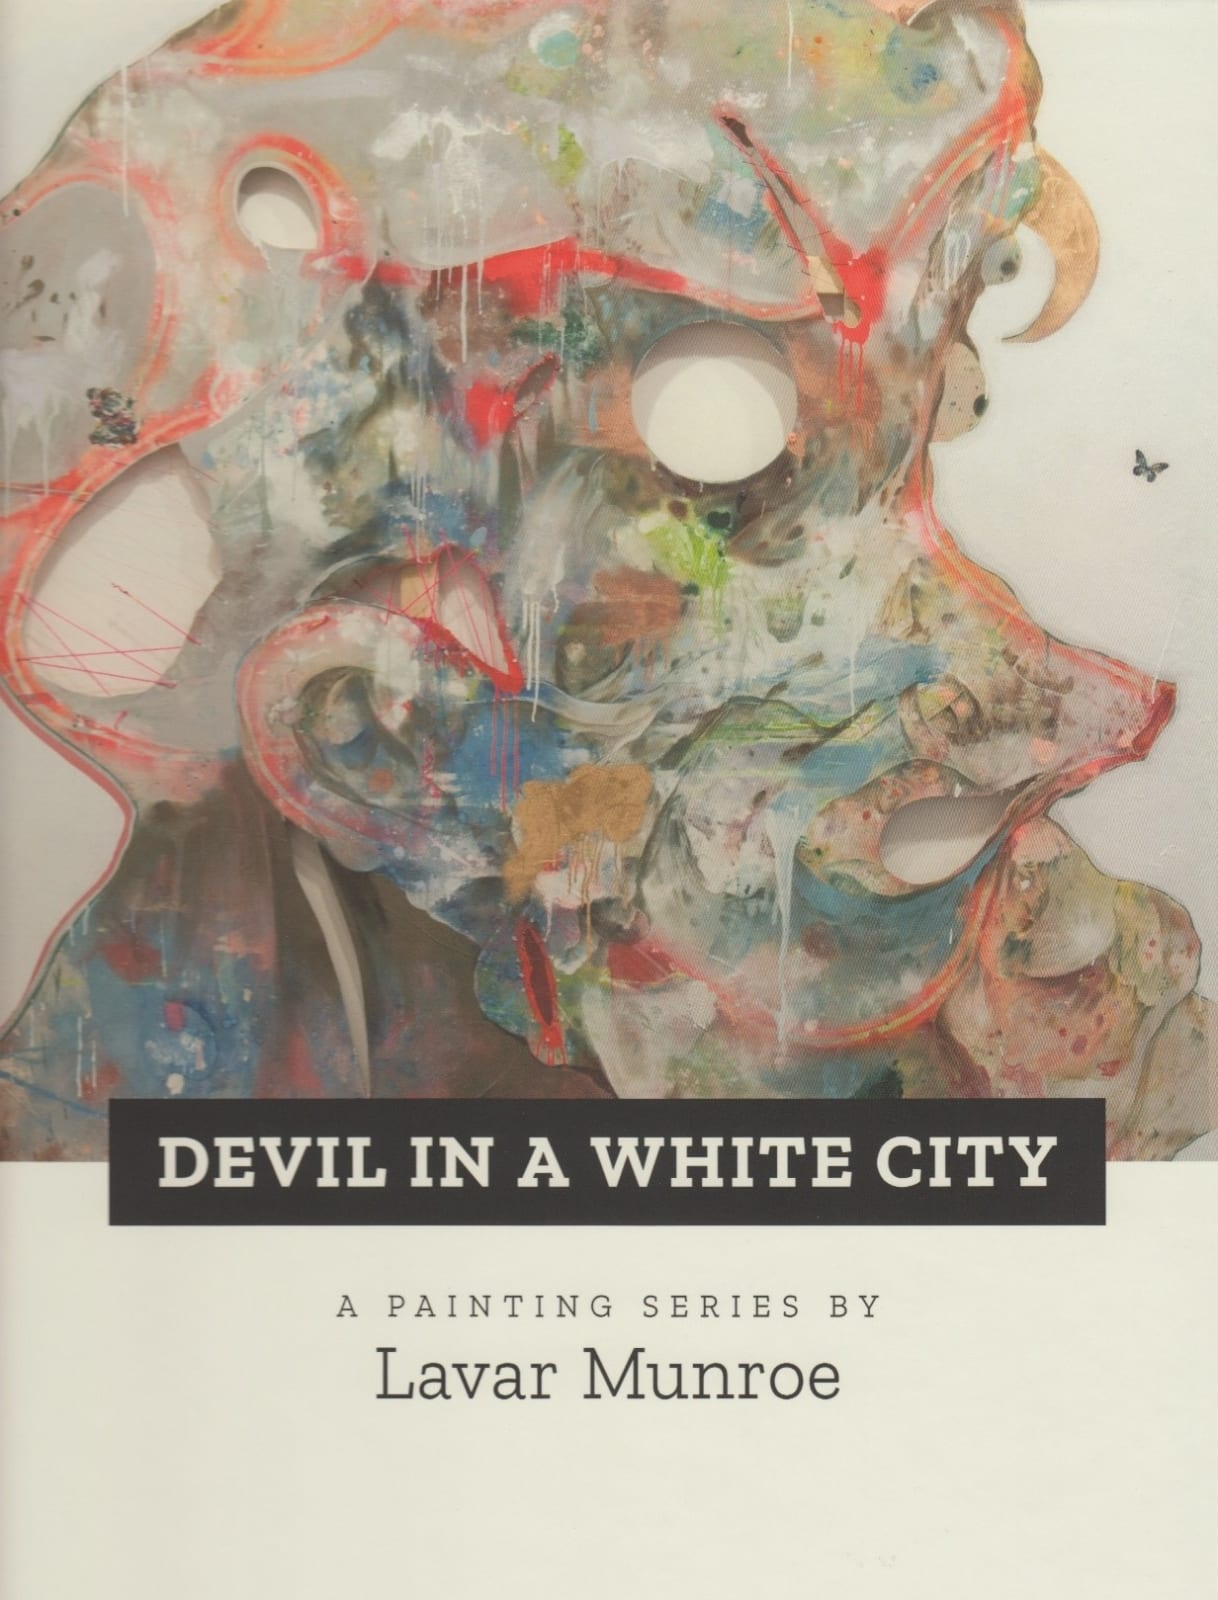 Devil in a White City: A Painting Series by Lavar Munroe Meadows Museum of Art, Centenary College of Louisiana